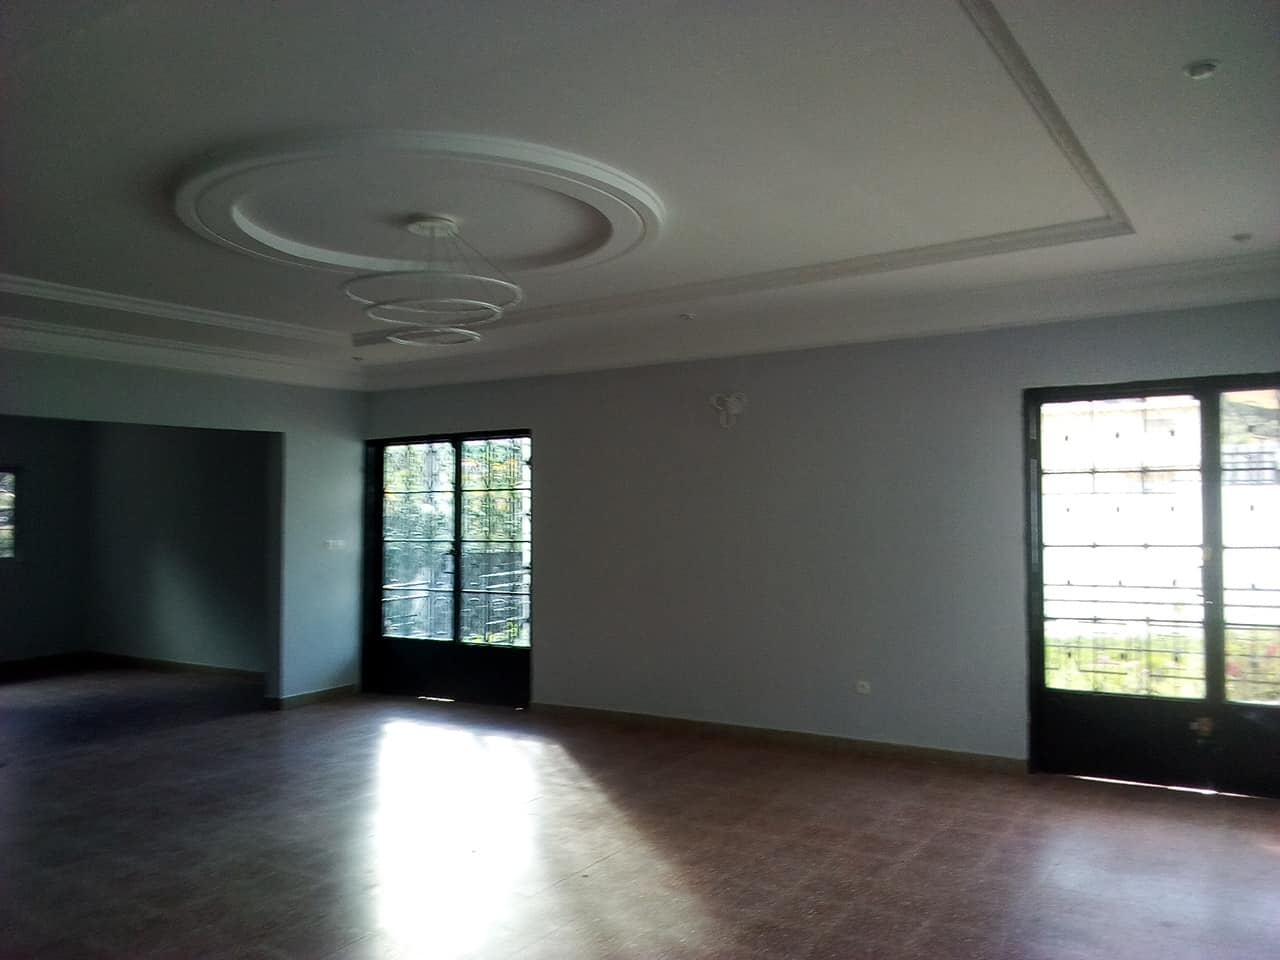 Office to rent at Yaoundé, Bastos, pas loin de la banque mondiale - 1500 m2 - 1 500 000 FCFA